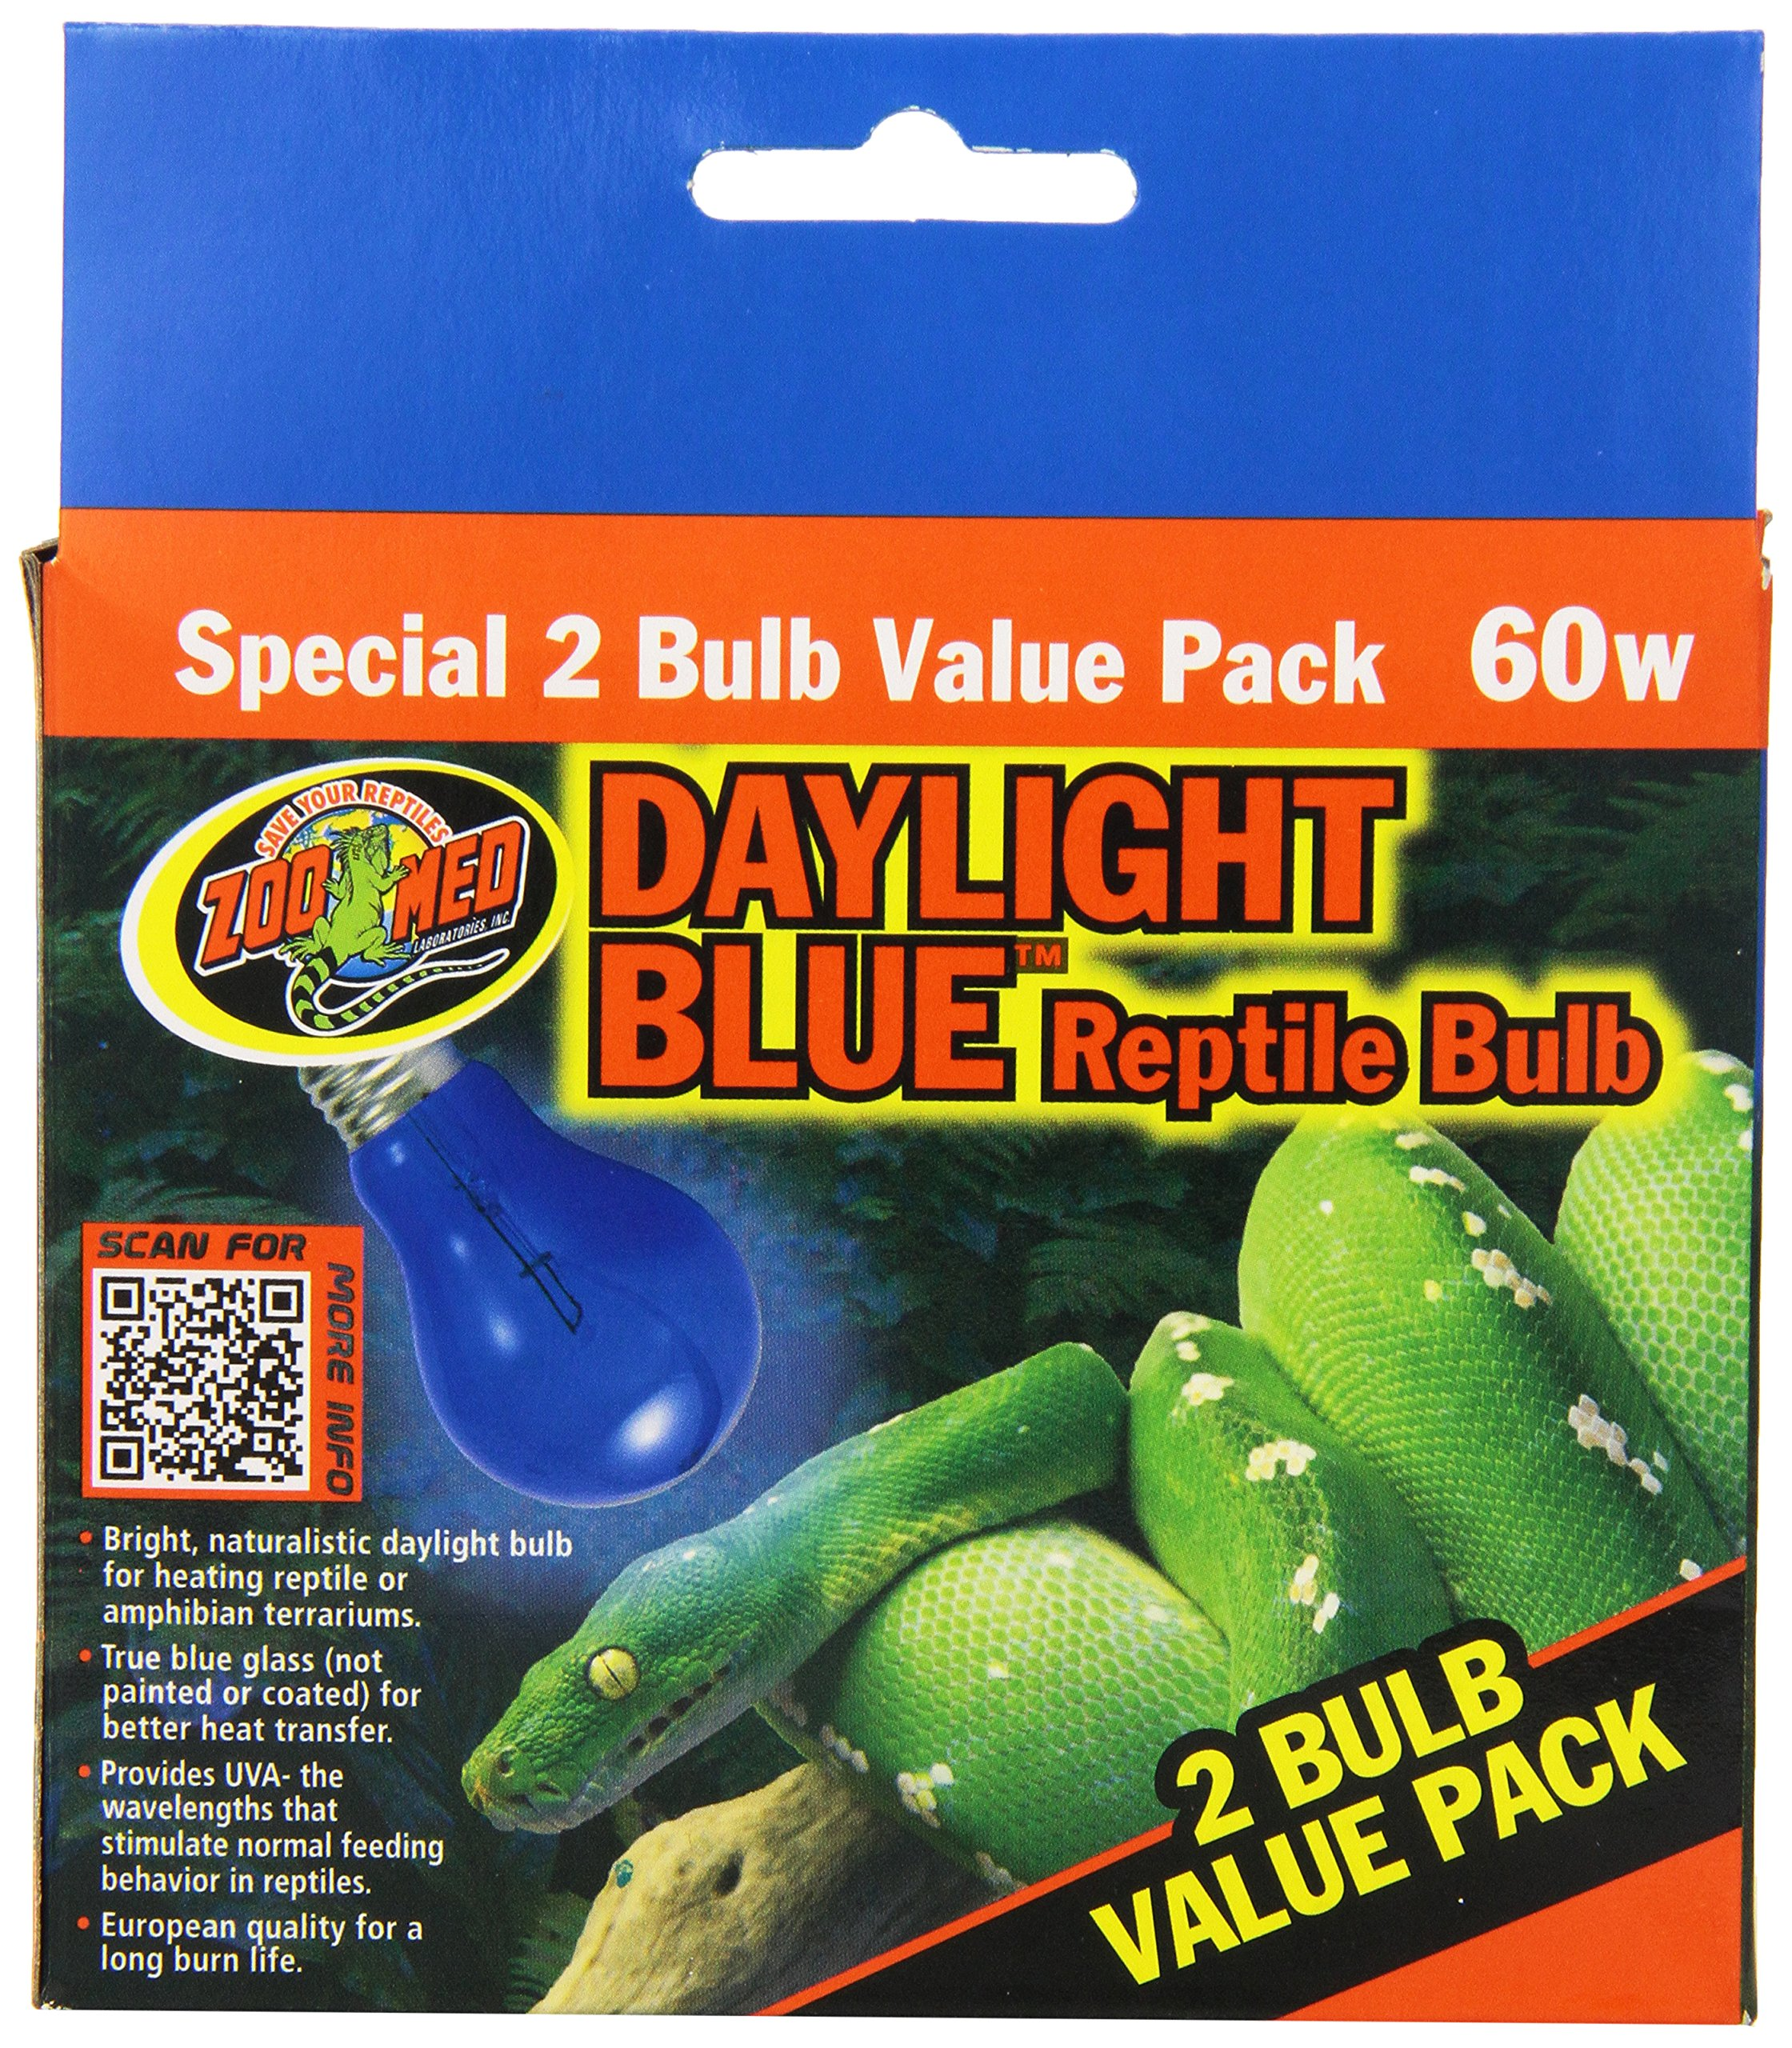 Zoo Med 2-Pack Daylight Blue Reptile Bulb, 60-watt by Zoo Med (Image #3)